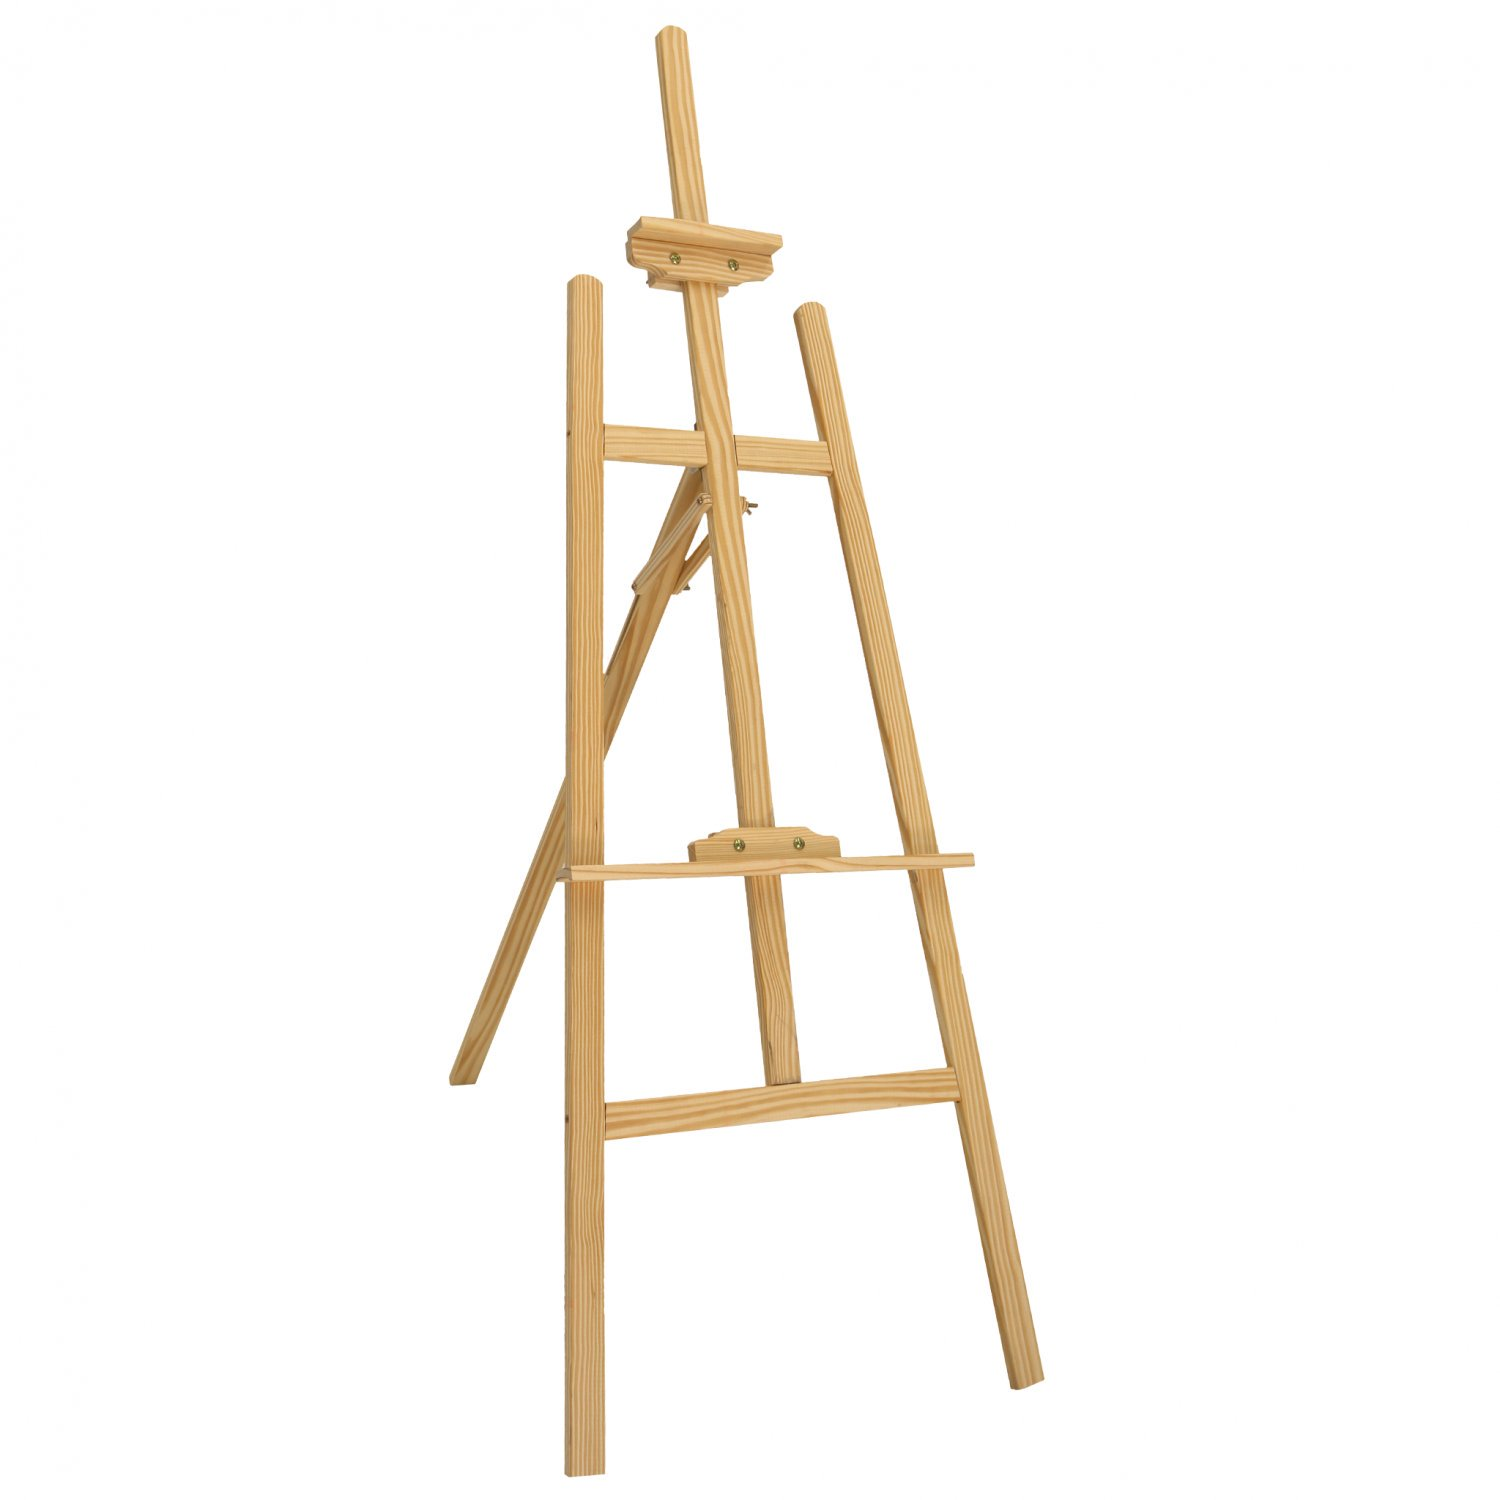 5ft 1500mm Wooden Pine Tripod Studio Canvas Easel Art Stand